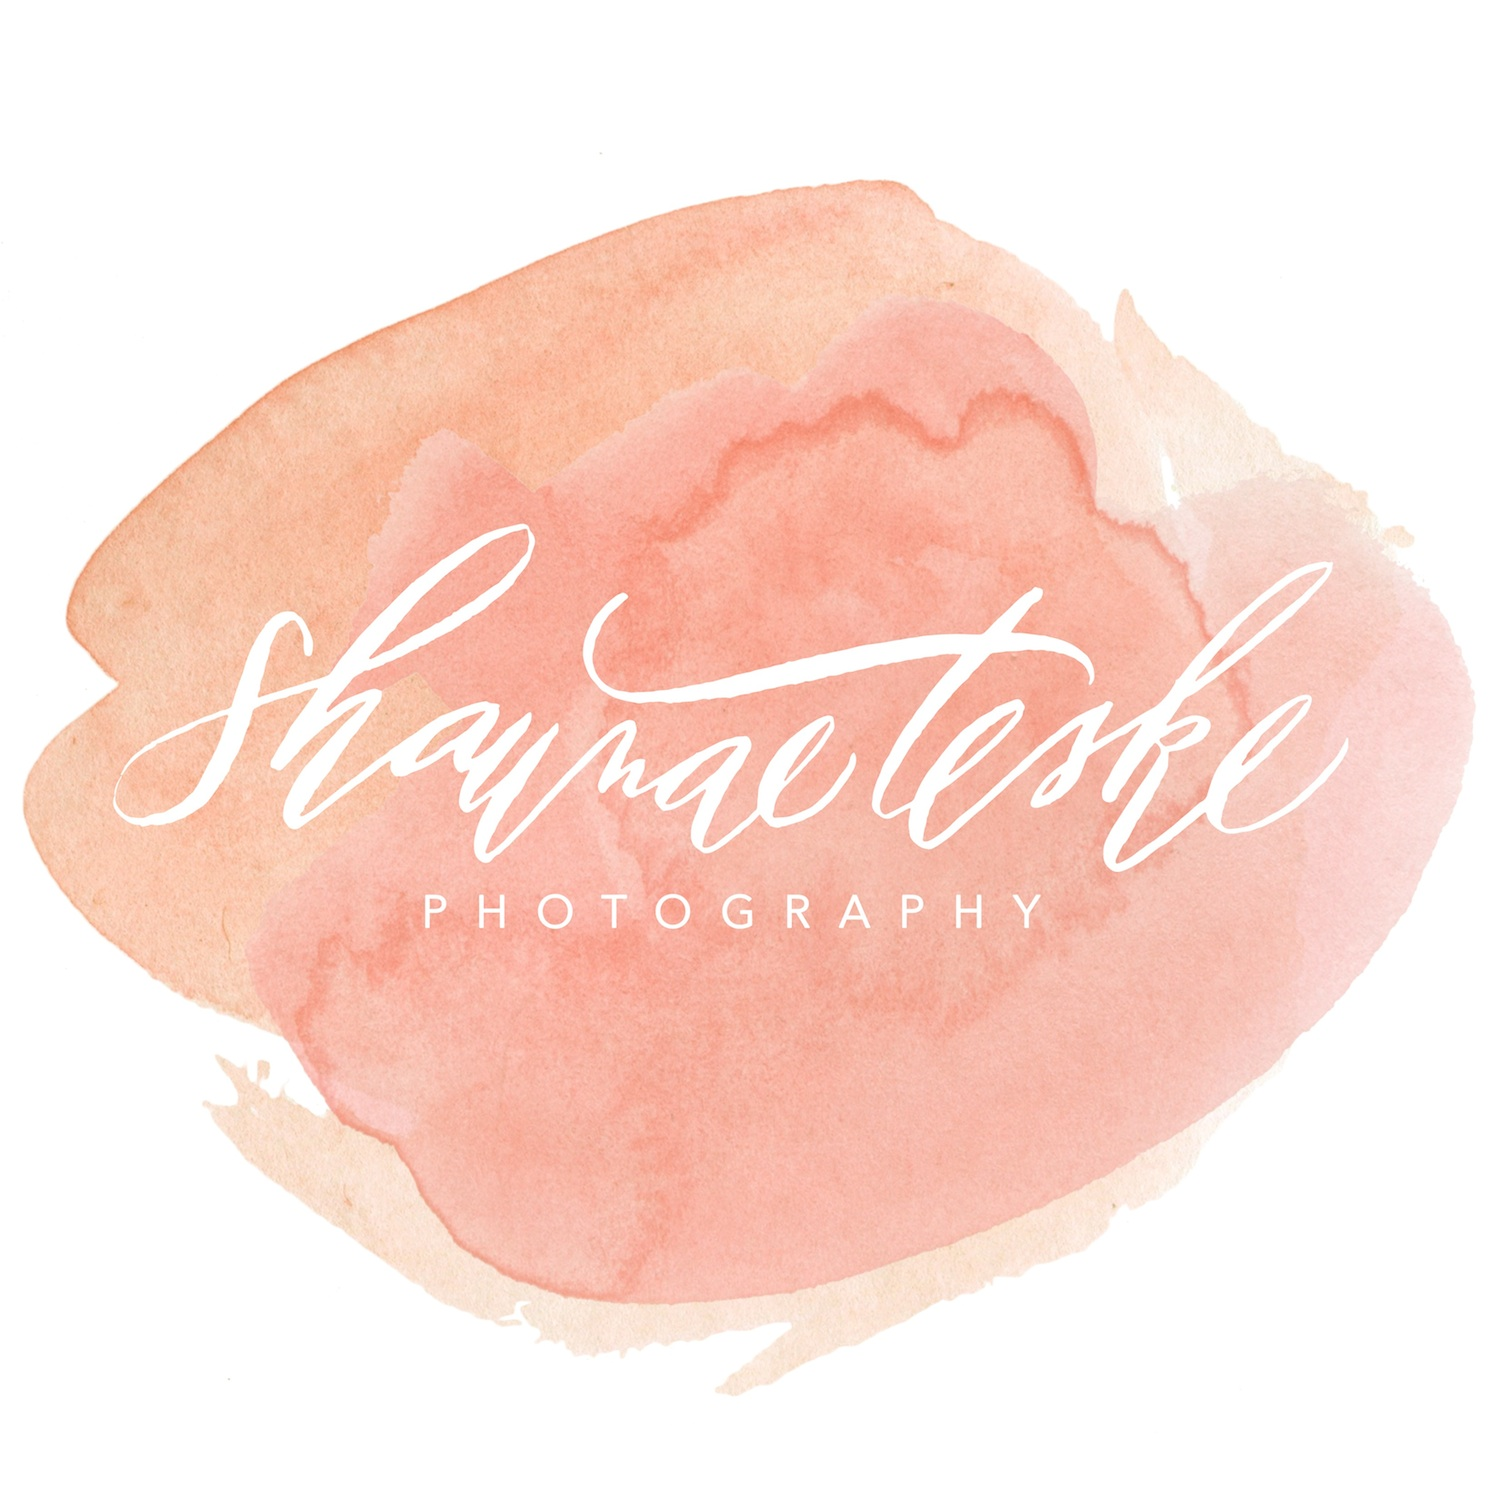 Shaunae Teske Photography